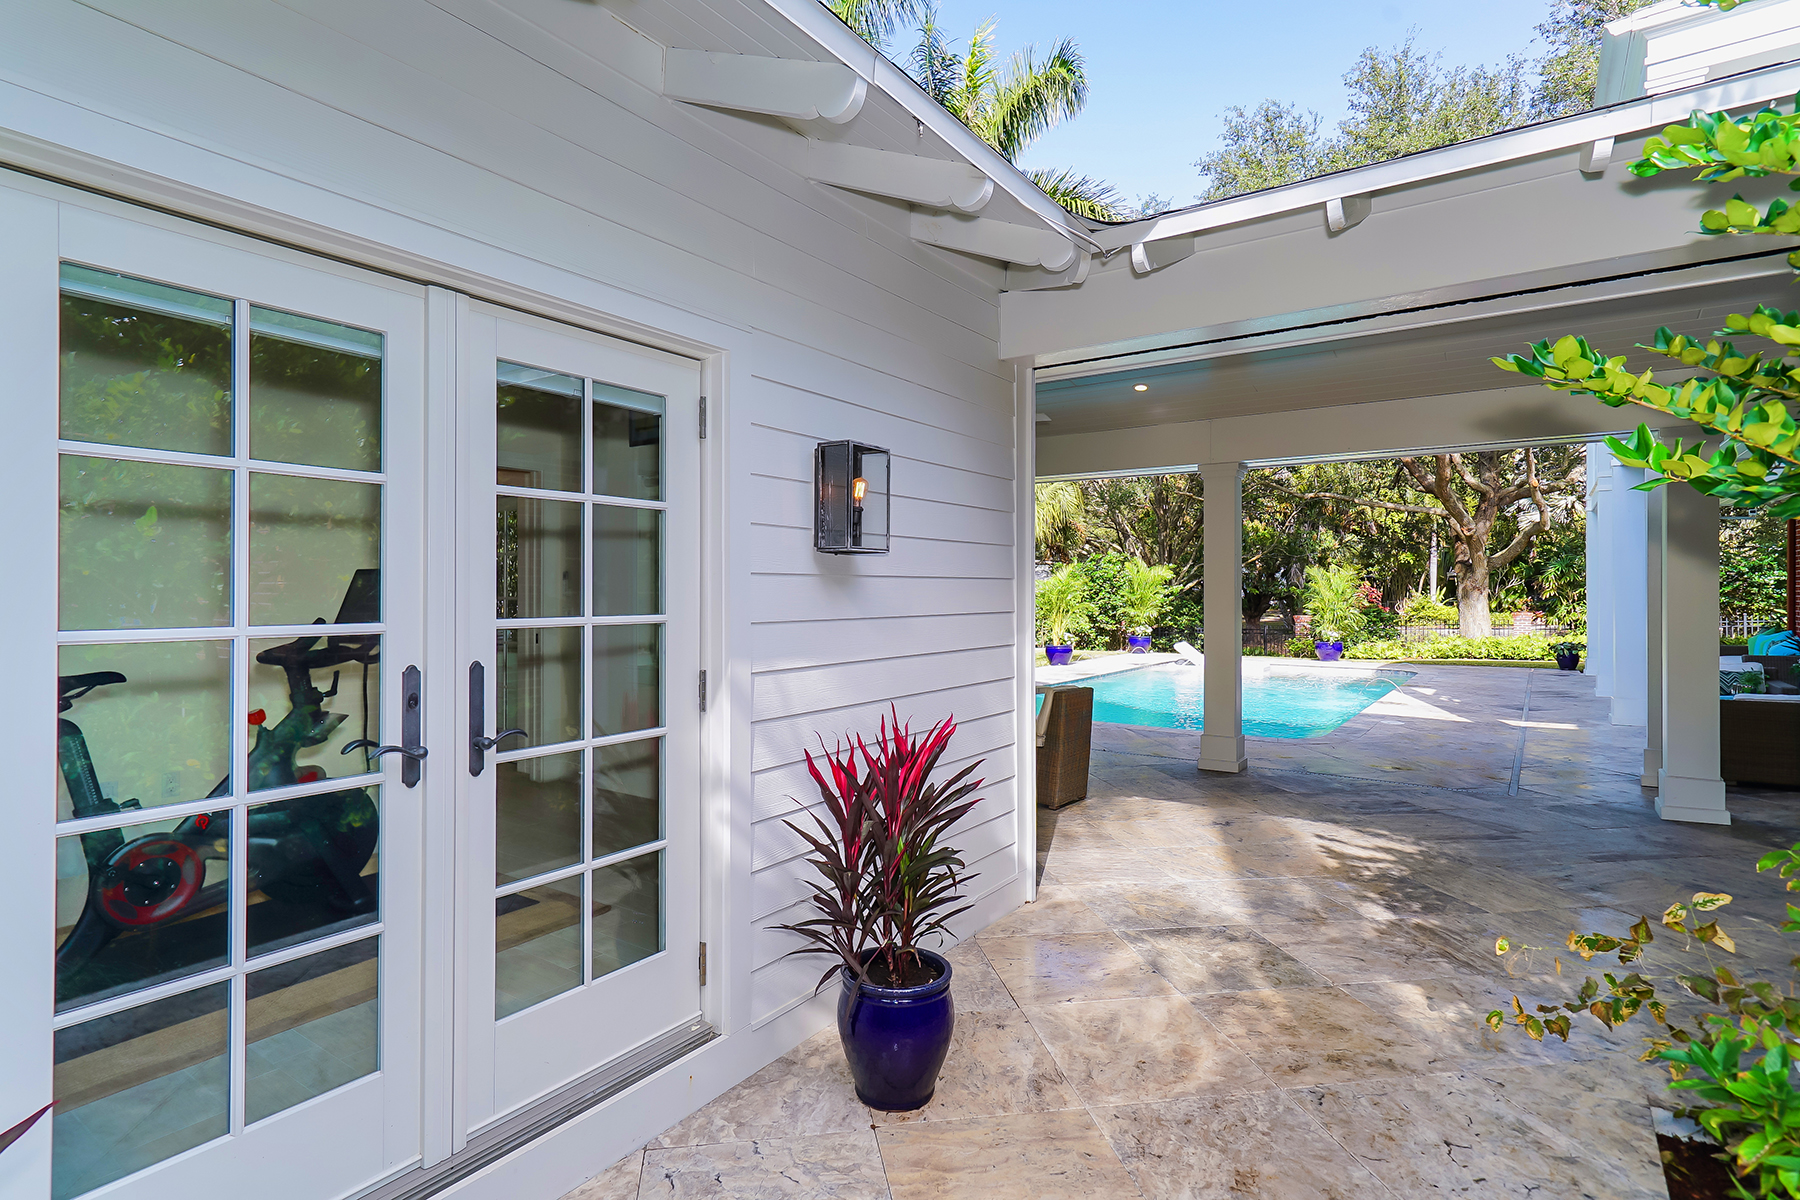 Additional photo for property listing at BAY VIEW HEIGHTS 1718  Bay View Dr,  Sarasota, Florida 34239 United States